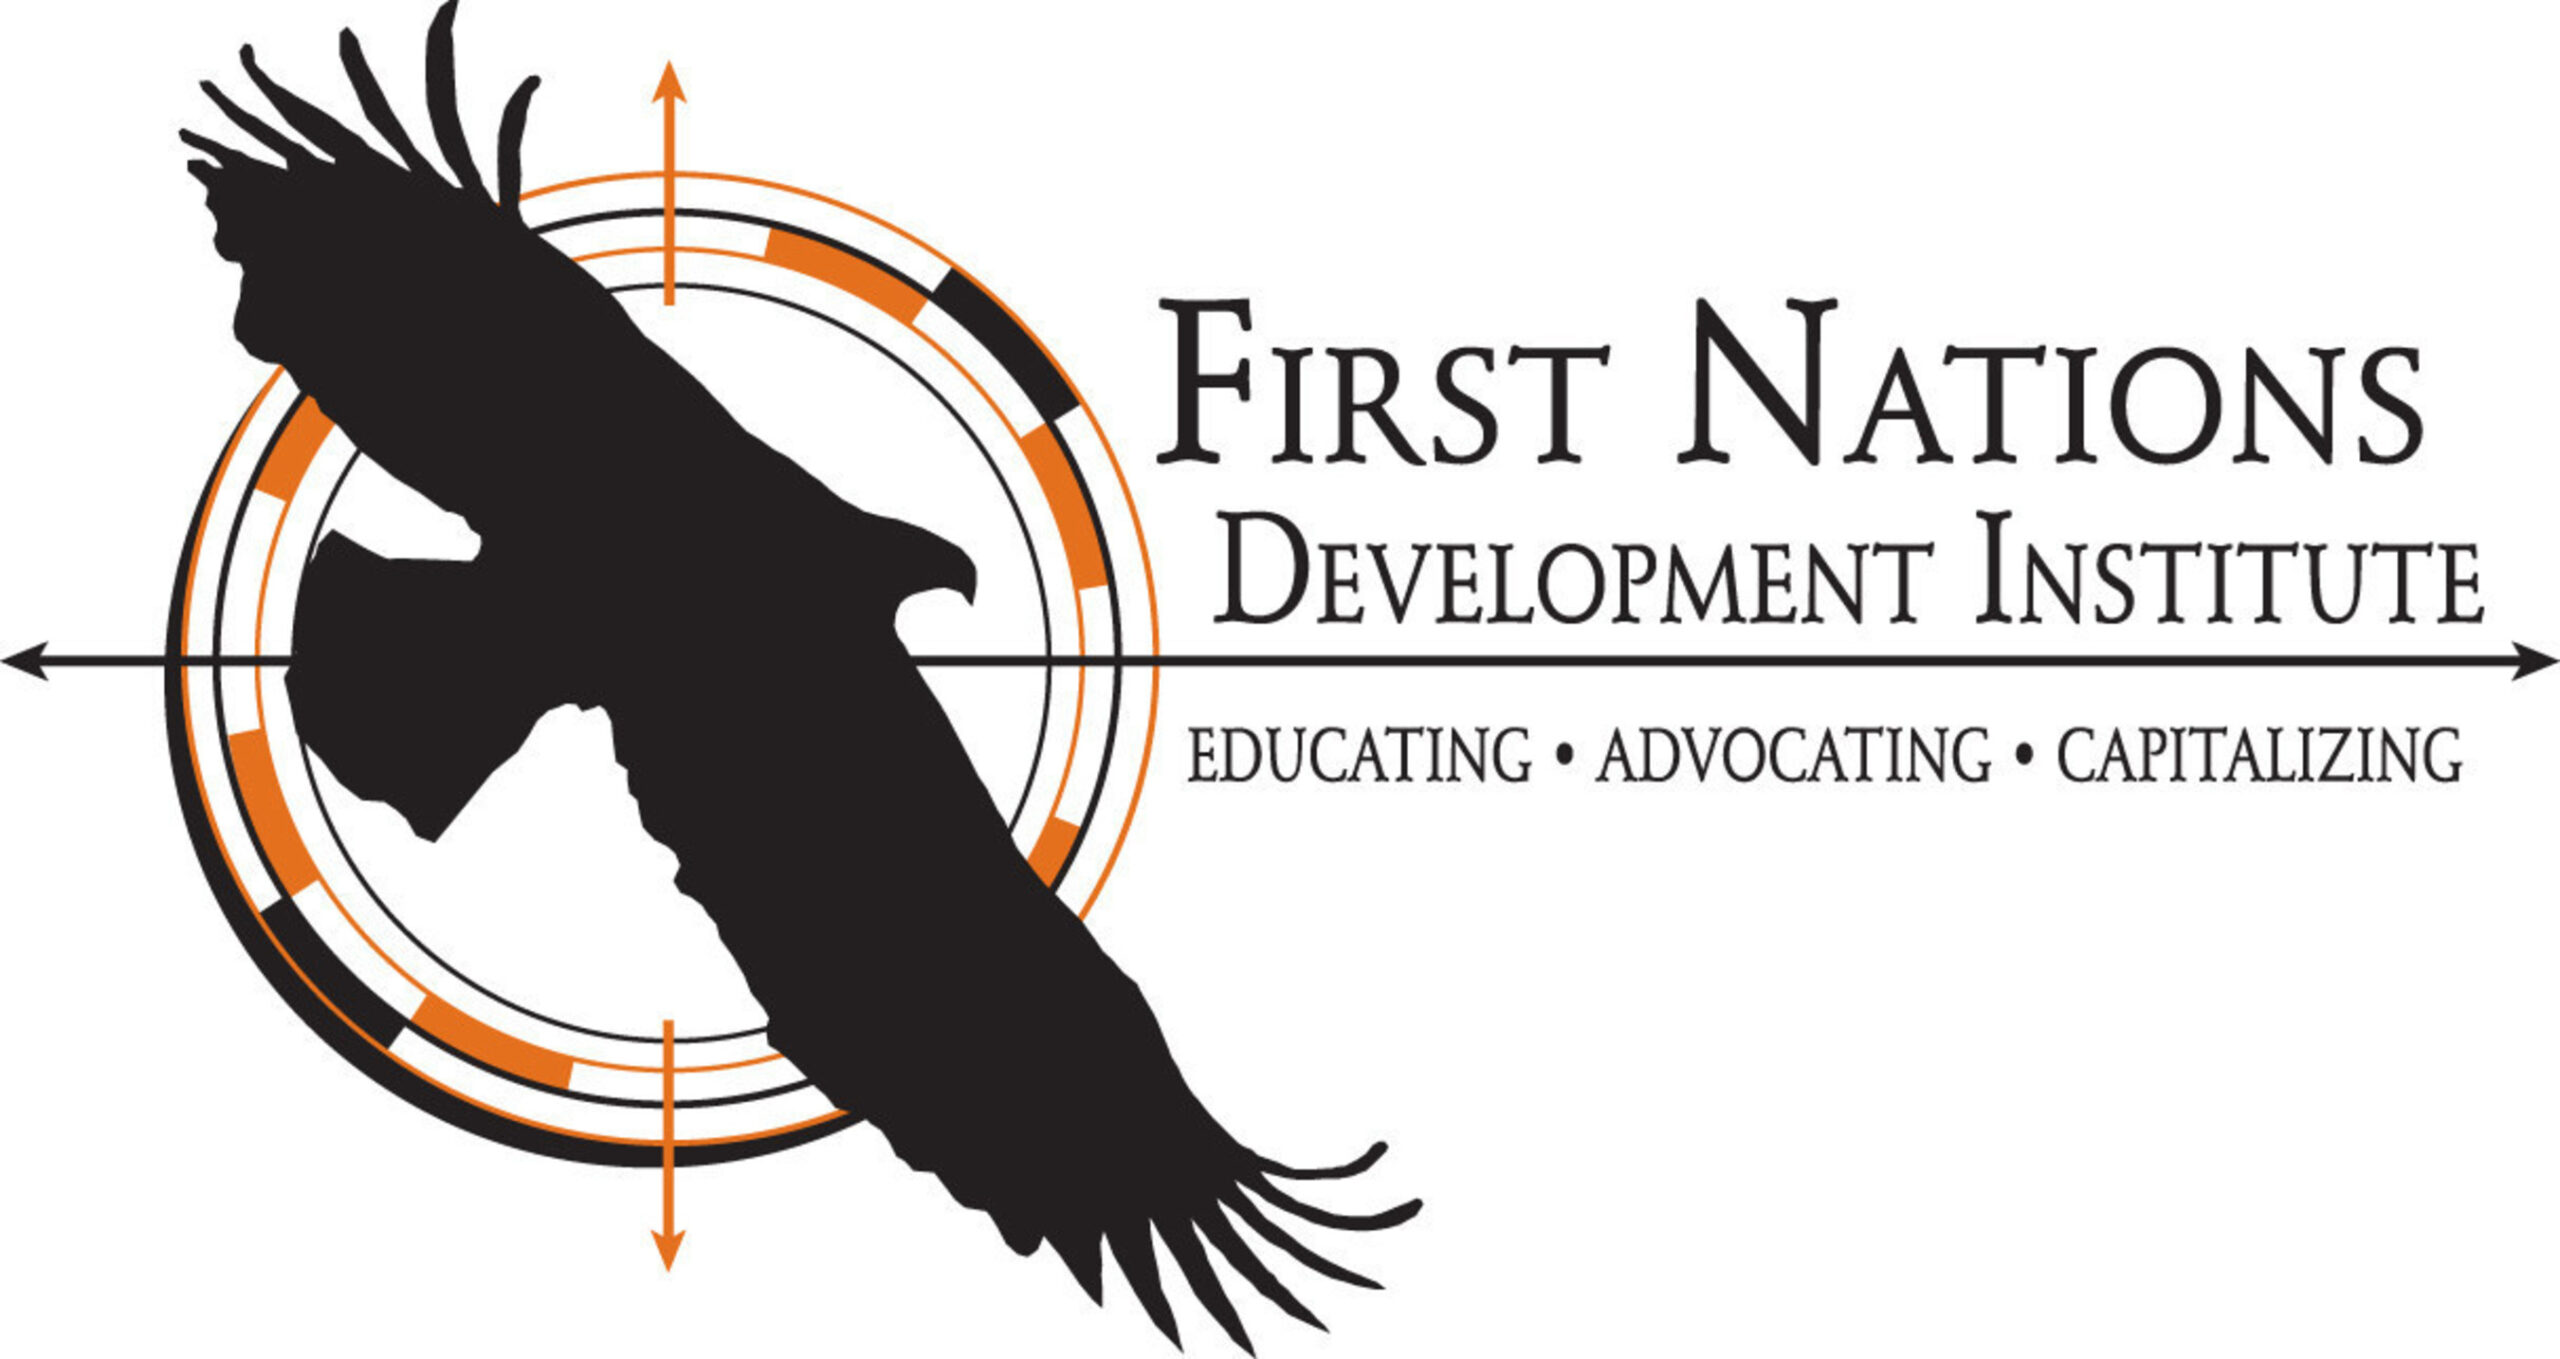 From our Partners at First Nations Development Institute